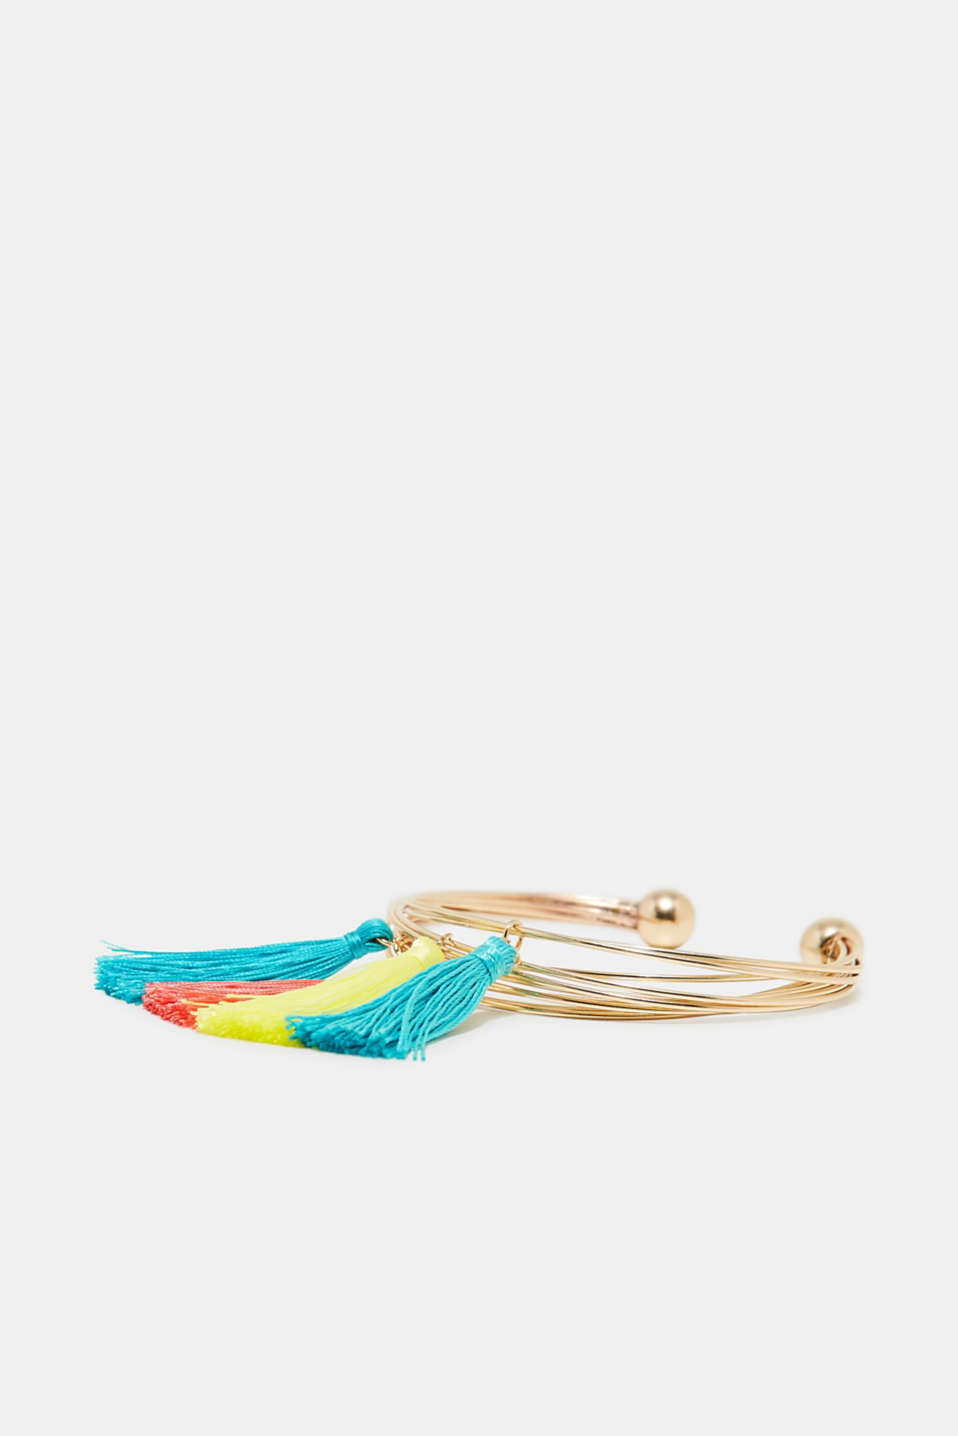 Bangle with colourful tassels